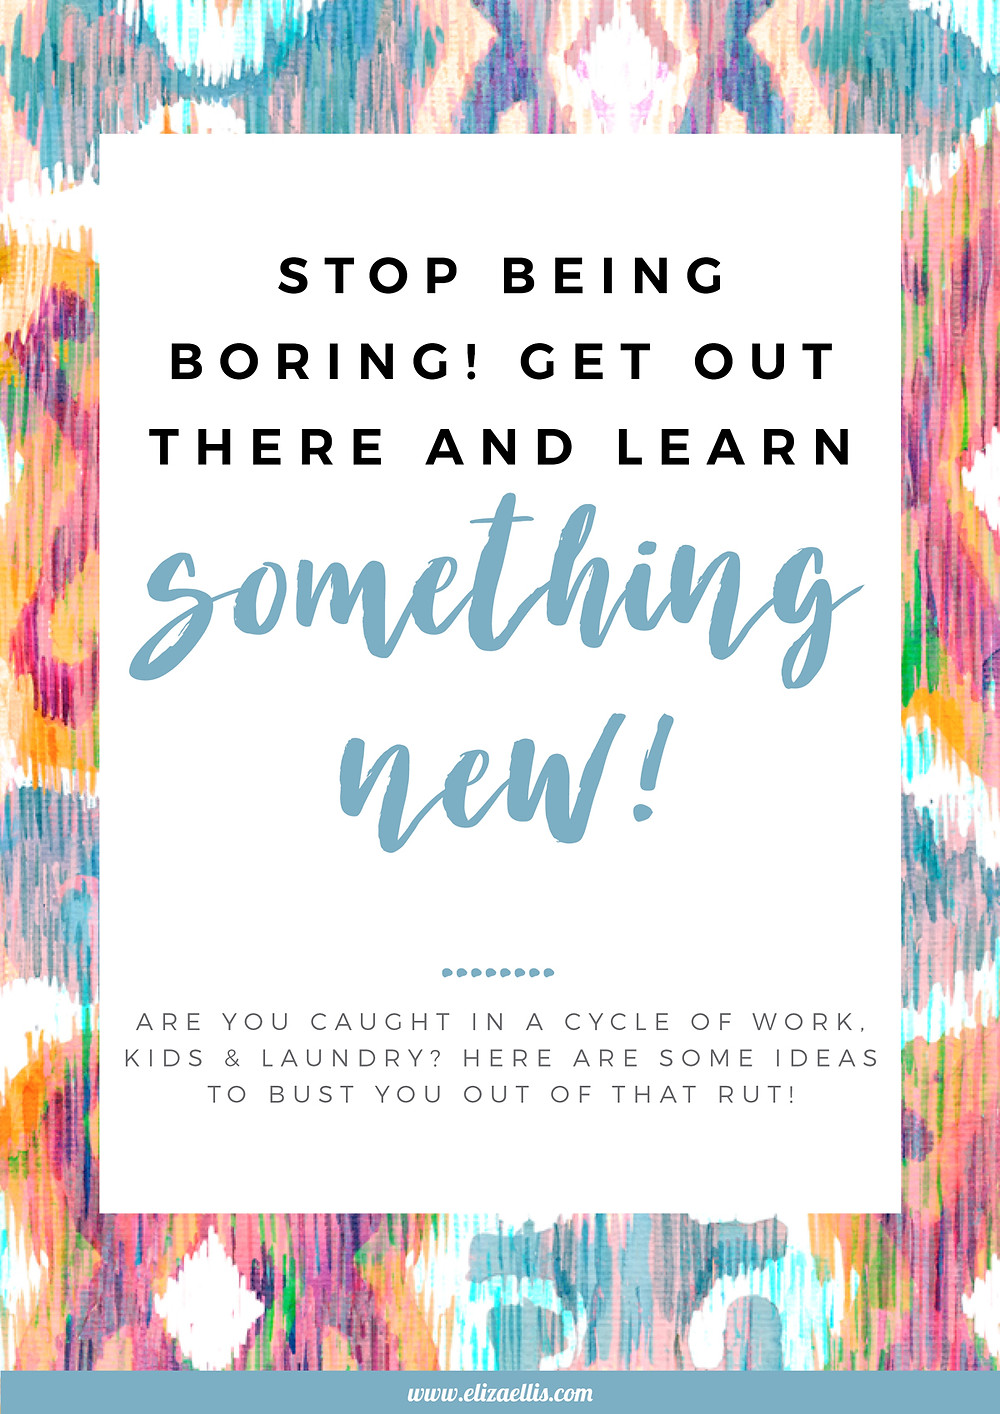 Stop Being Boring! Get Out There and Learn Something New! // Eliza Ellis // try your best, positive affirmations, inspiring stories, inspirational people, failure, overcoming failure, mental health, fear of failure, how to fail, motivation, drive and direction, try again, wisdom quotes, wisdom, how to grow, self care, self care ideas, self care for women, growing up, mental health, mental health tips, coping skills, mental health recovery, wellness habits, wellness inspiration  new beginnings, growing and learning as an adult, courage, trying something new, hobbies, hobbies for women, hobby ideas, hobbies to try, creative hobbies, learn belly dancing, life drawing classes, cheese making, salsa dancing, improv acting, how to make candles, how to read palms, how to press flowers, how to make a terrarium, how to loom weave, how to arm knit, how to make gin, how to cultivate succulents